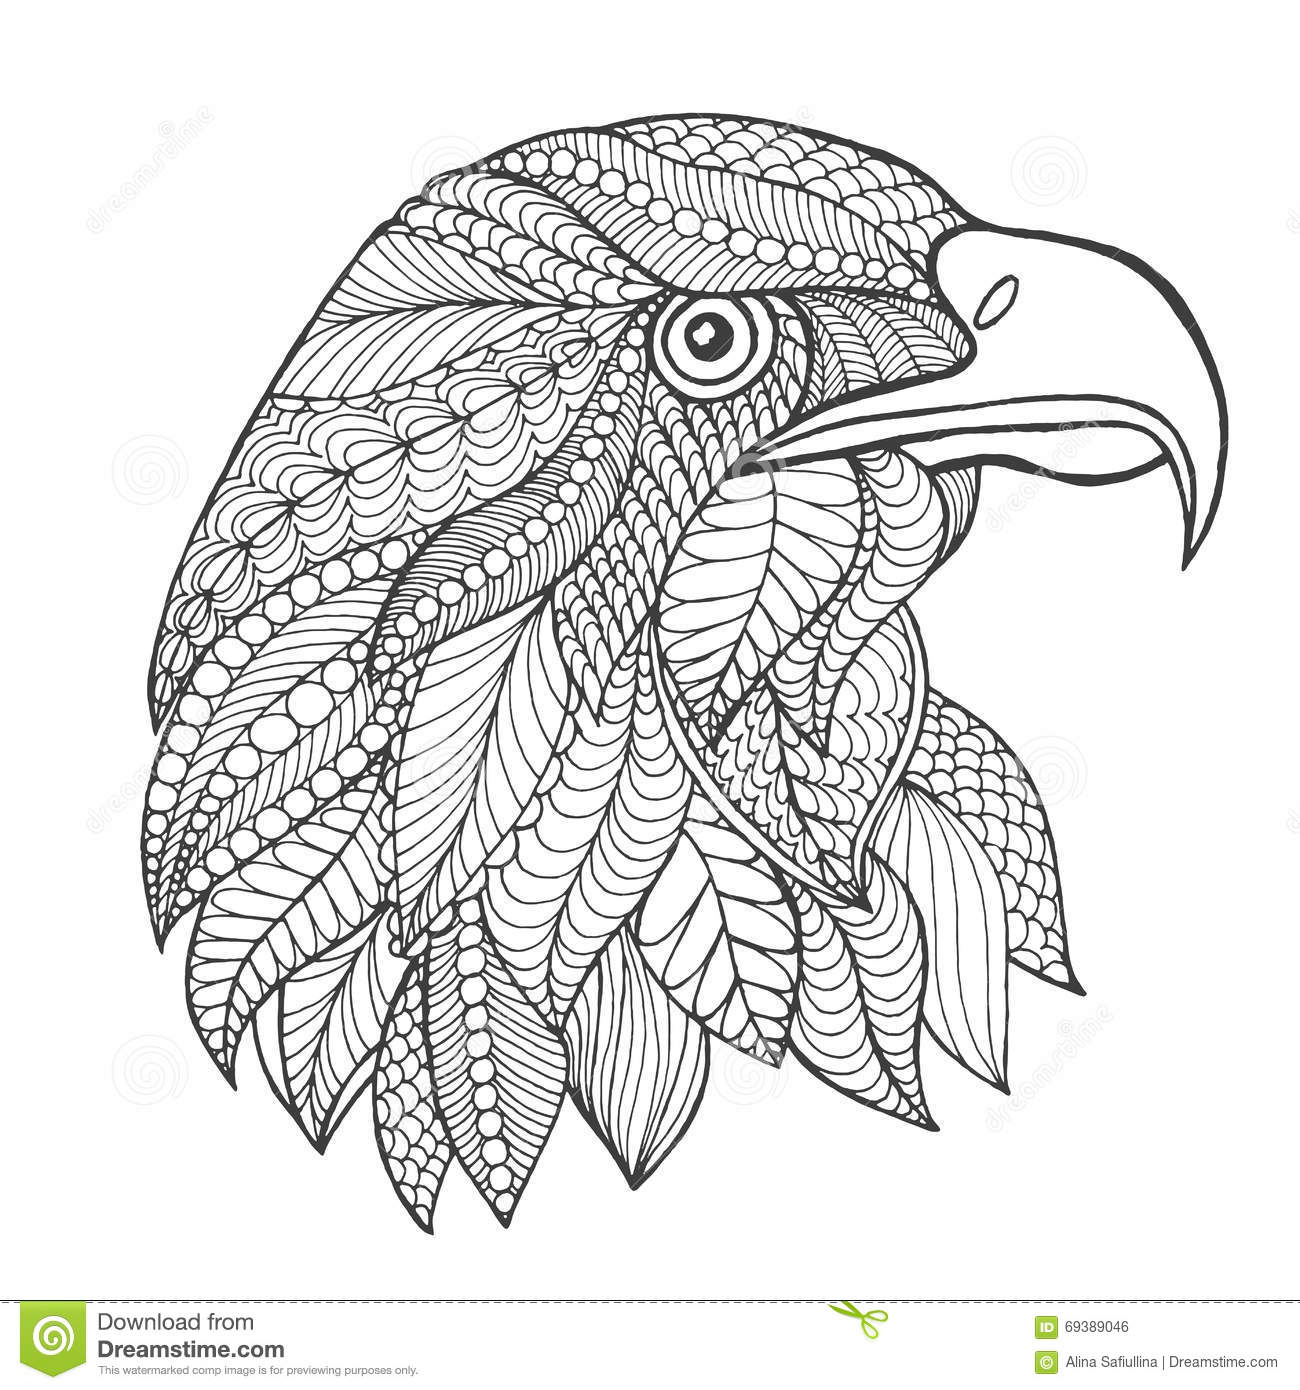 Eagle Mandala Coloring Pages Coloring Pages